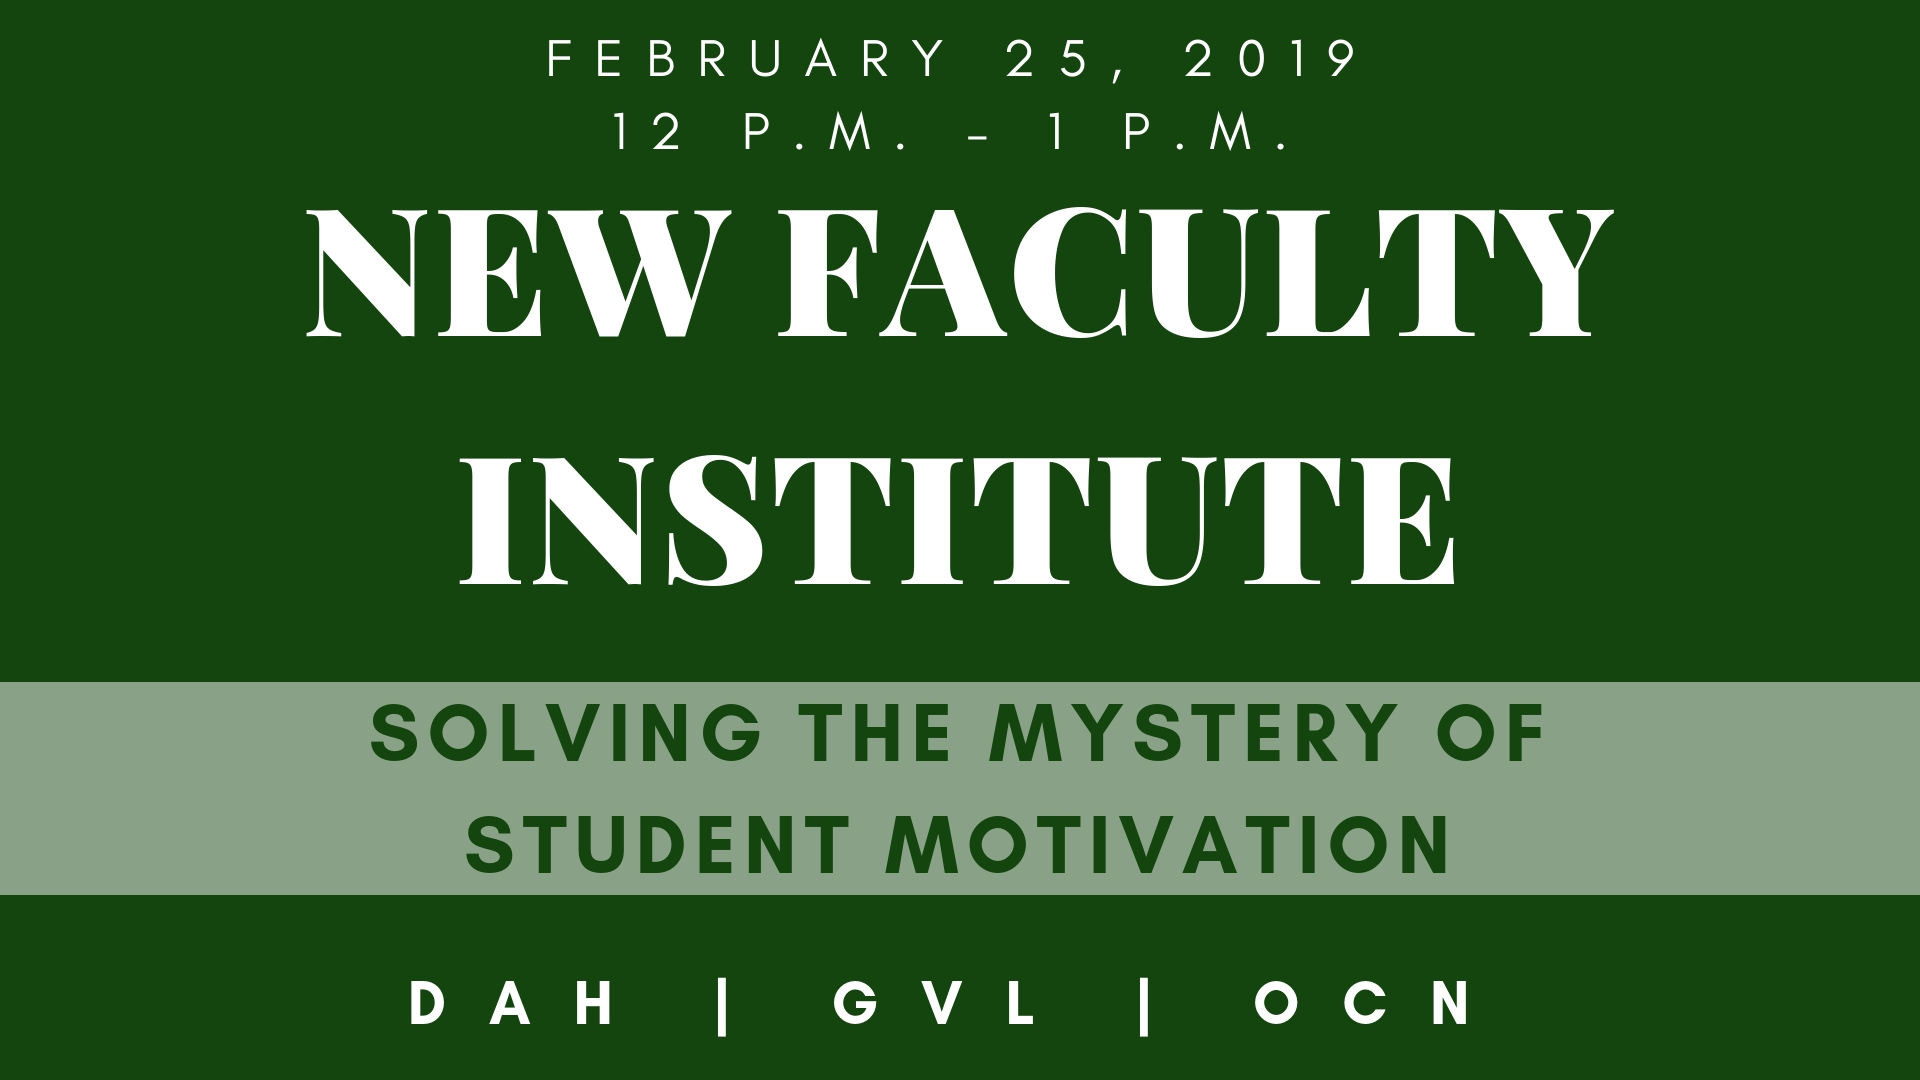 New Faulty Institute workshop information for the Dahlonega, Gainesville, and Oconee campuses